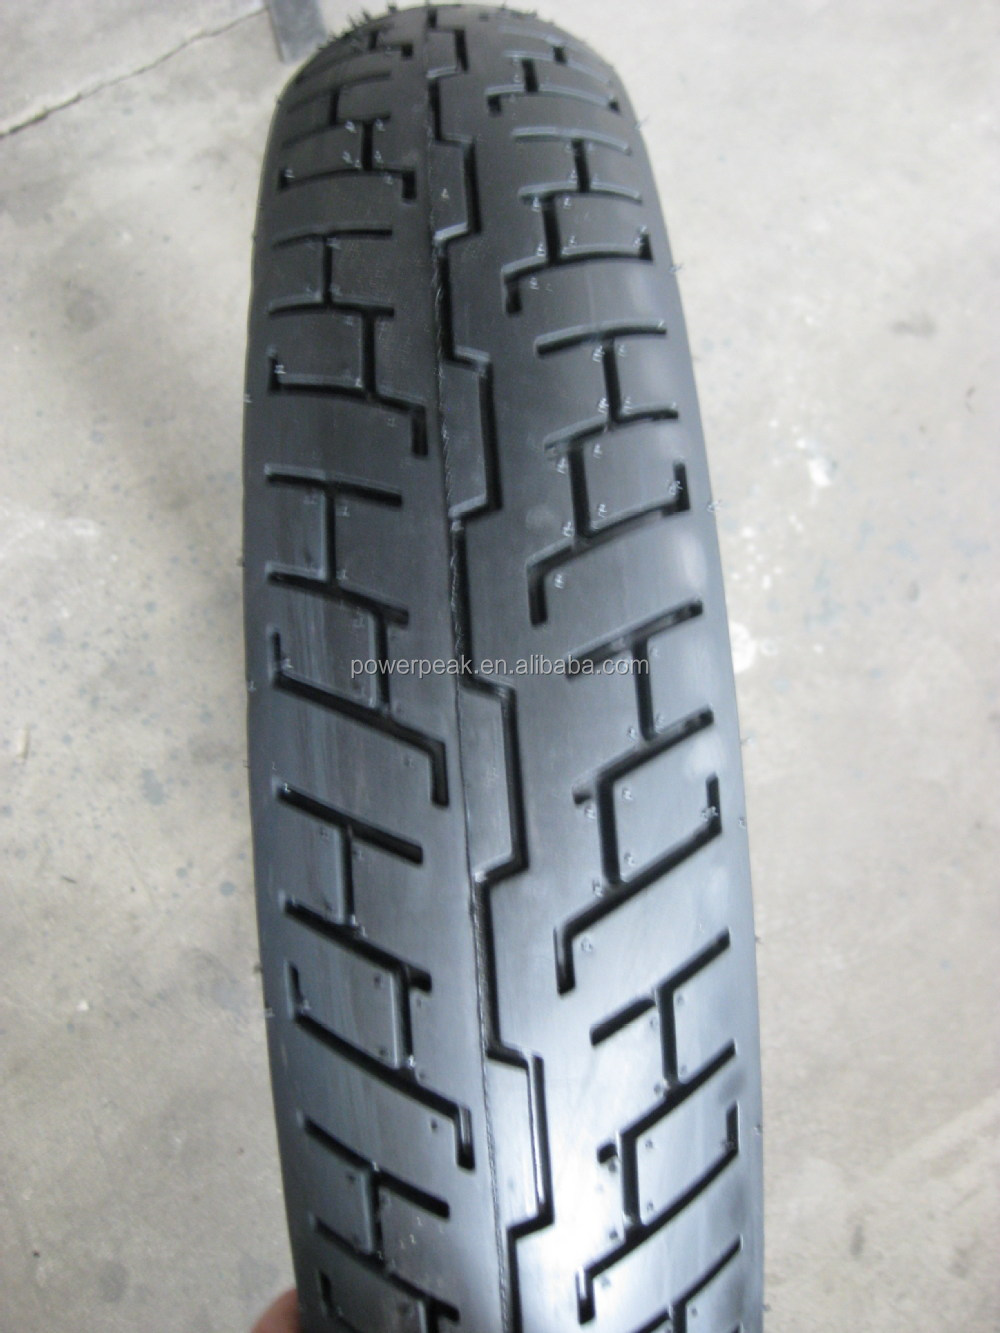 Chambre A Air Moto Tire Motorcycle 410 18 Chambre A Air 400 18 Pneu Moto 410 18 Buy Tire Motorcycle 410 18 Pneu Moto 410 18 Chambre A Air 400 18 Product On Alibaba